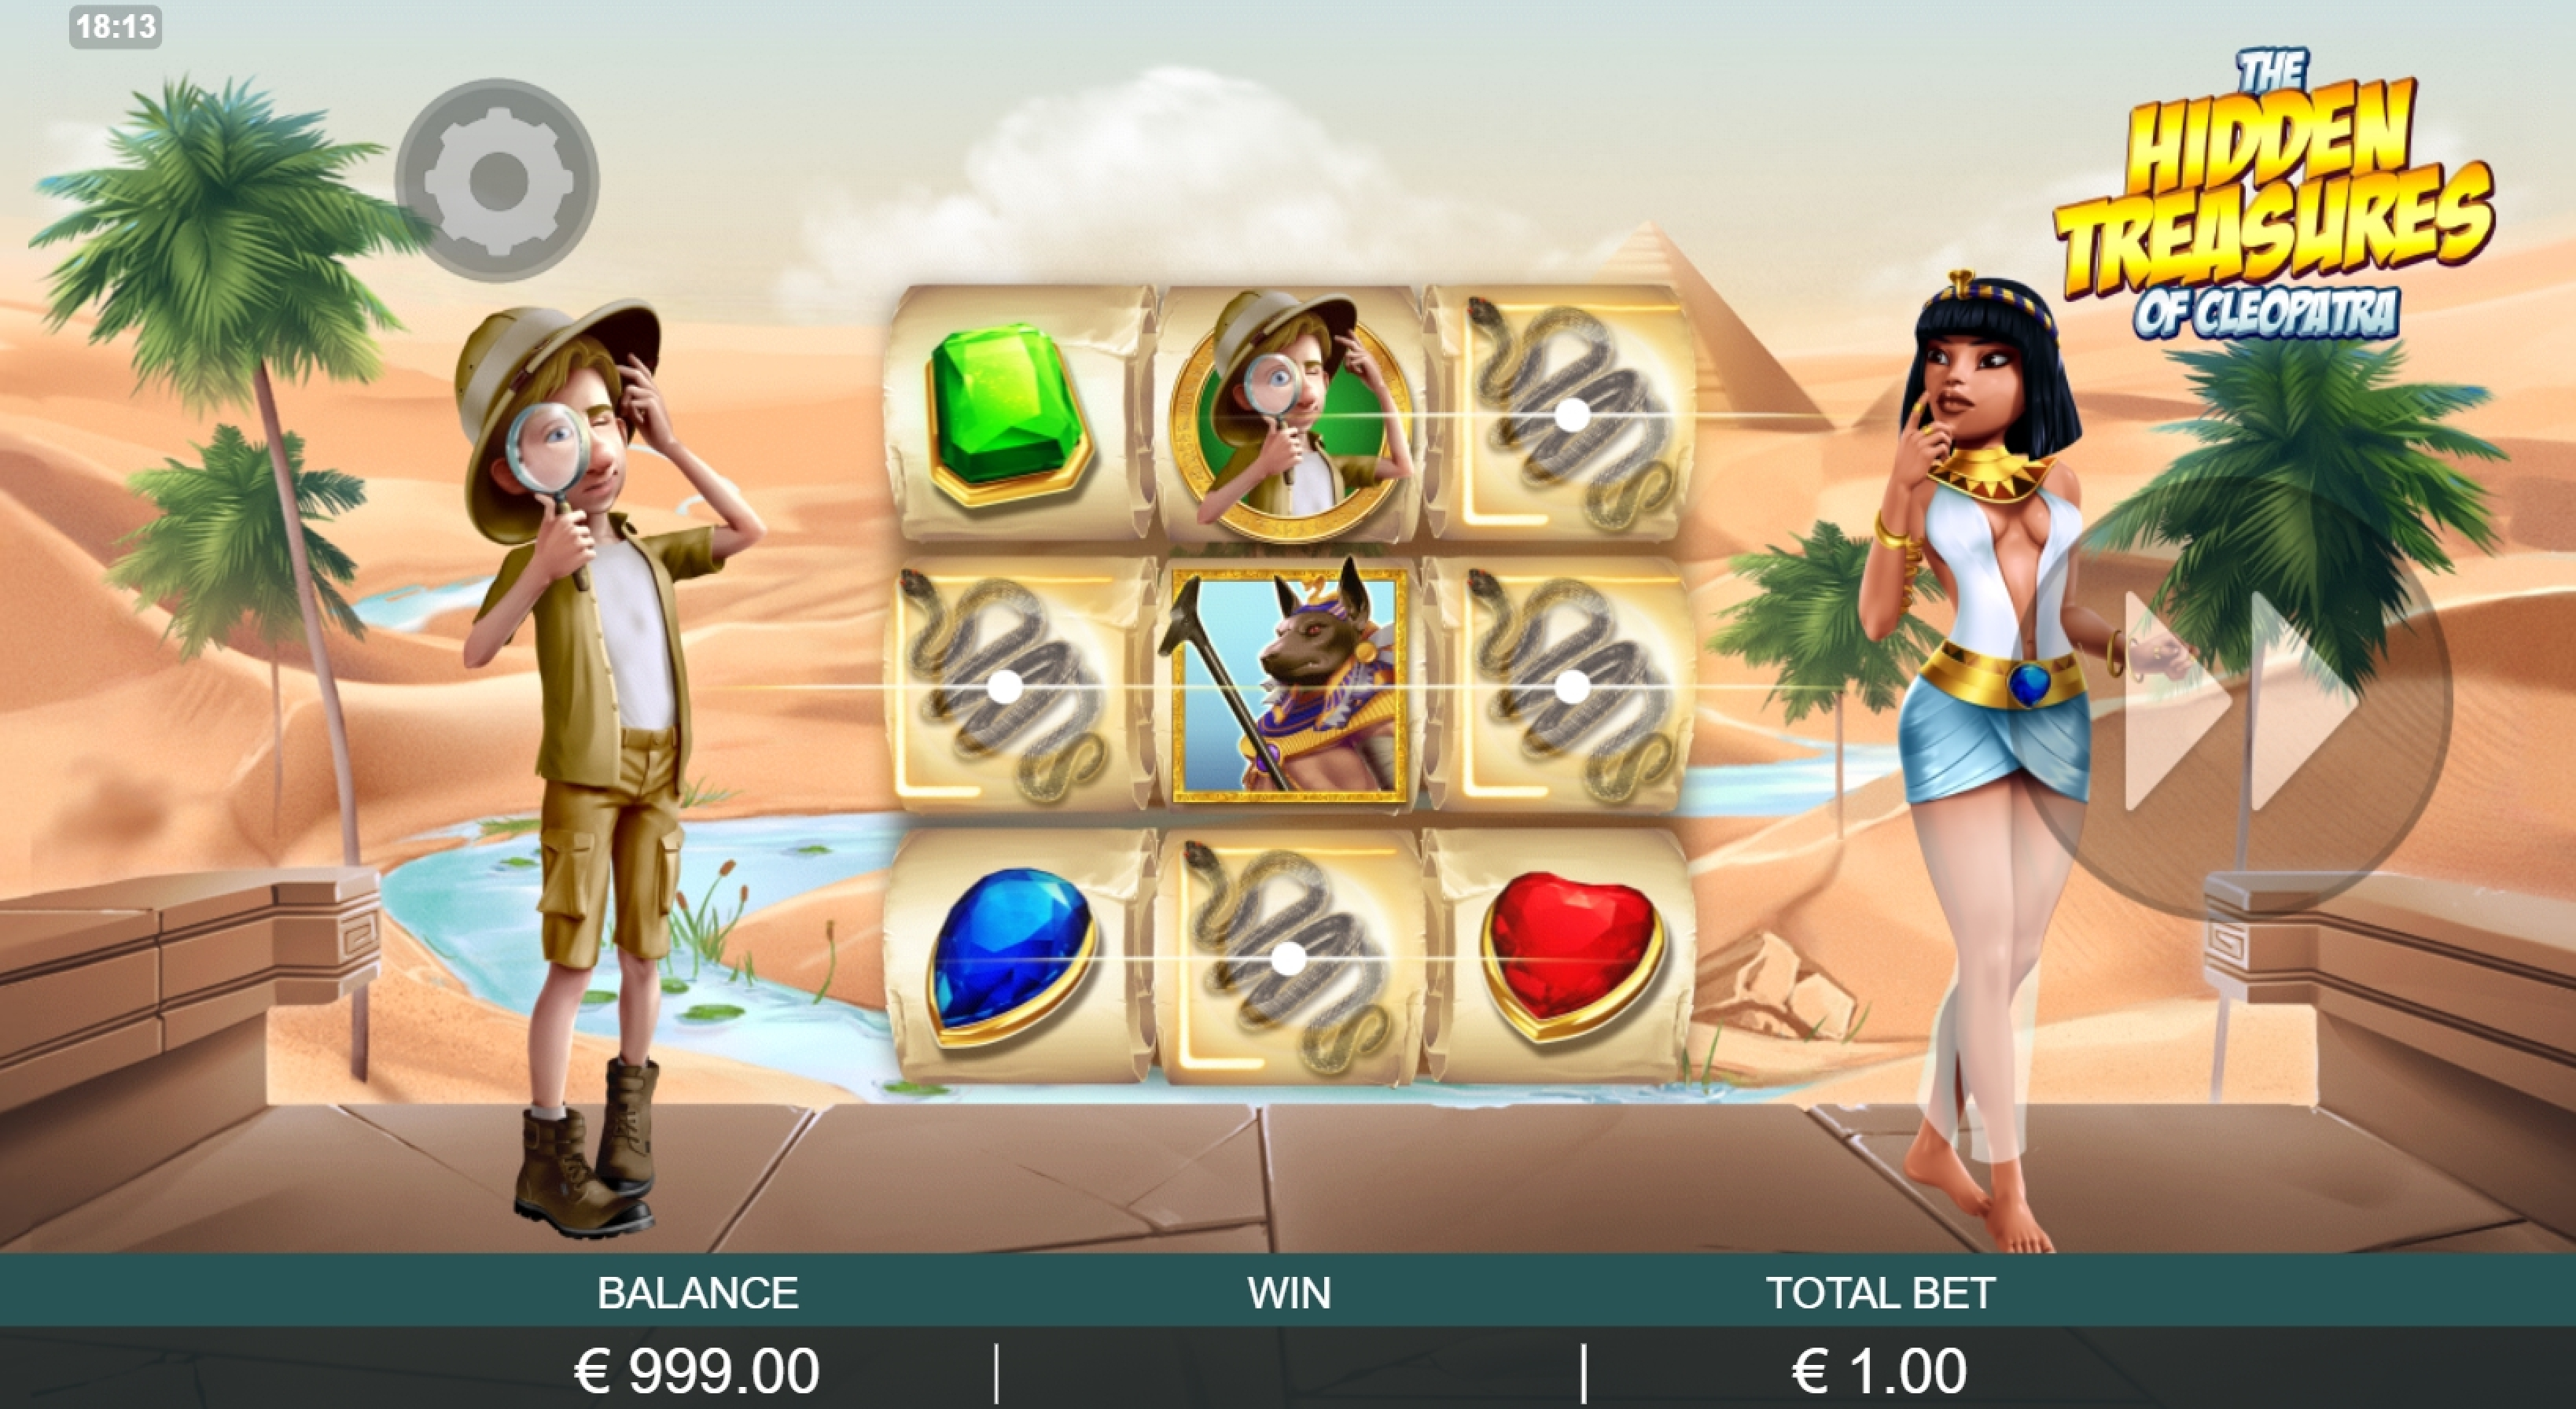 Win Money in The Hidden Treasure of Cleopatra Free Slot Game by Probability Jones